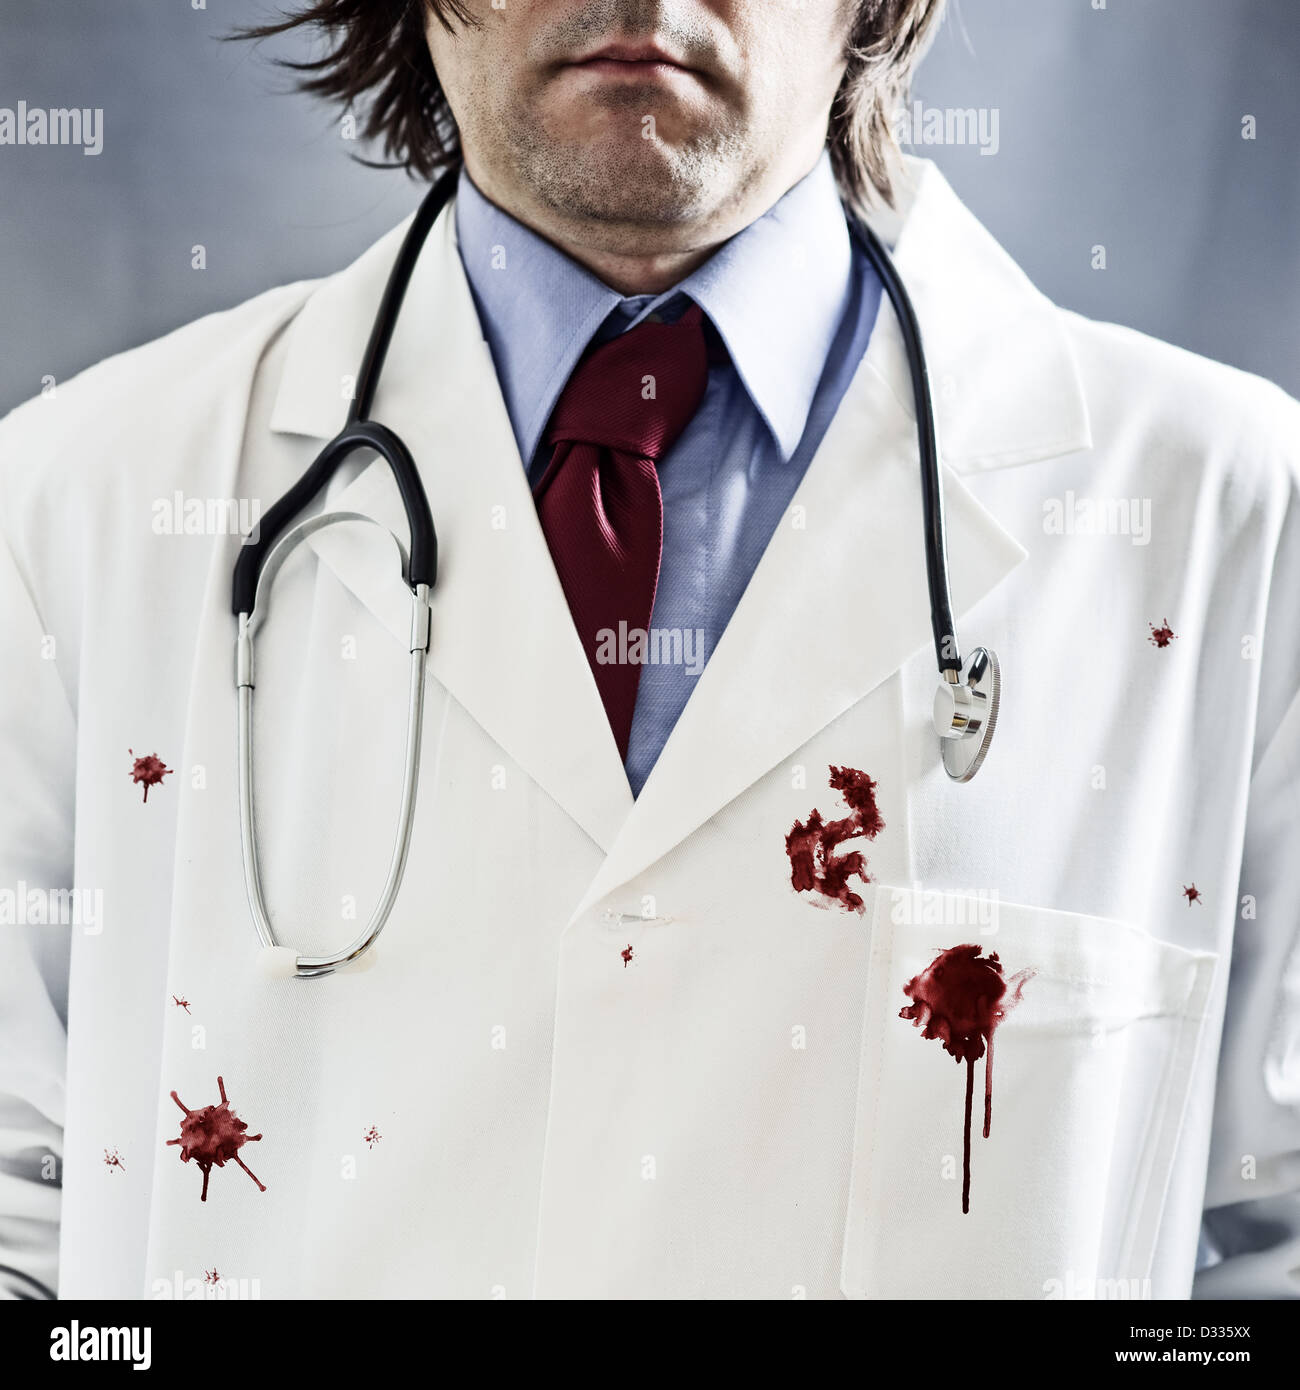 male doctor in bloody white coat. - Stock Image